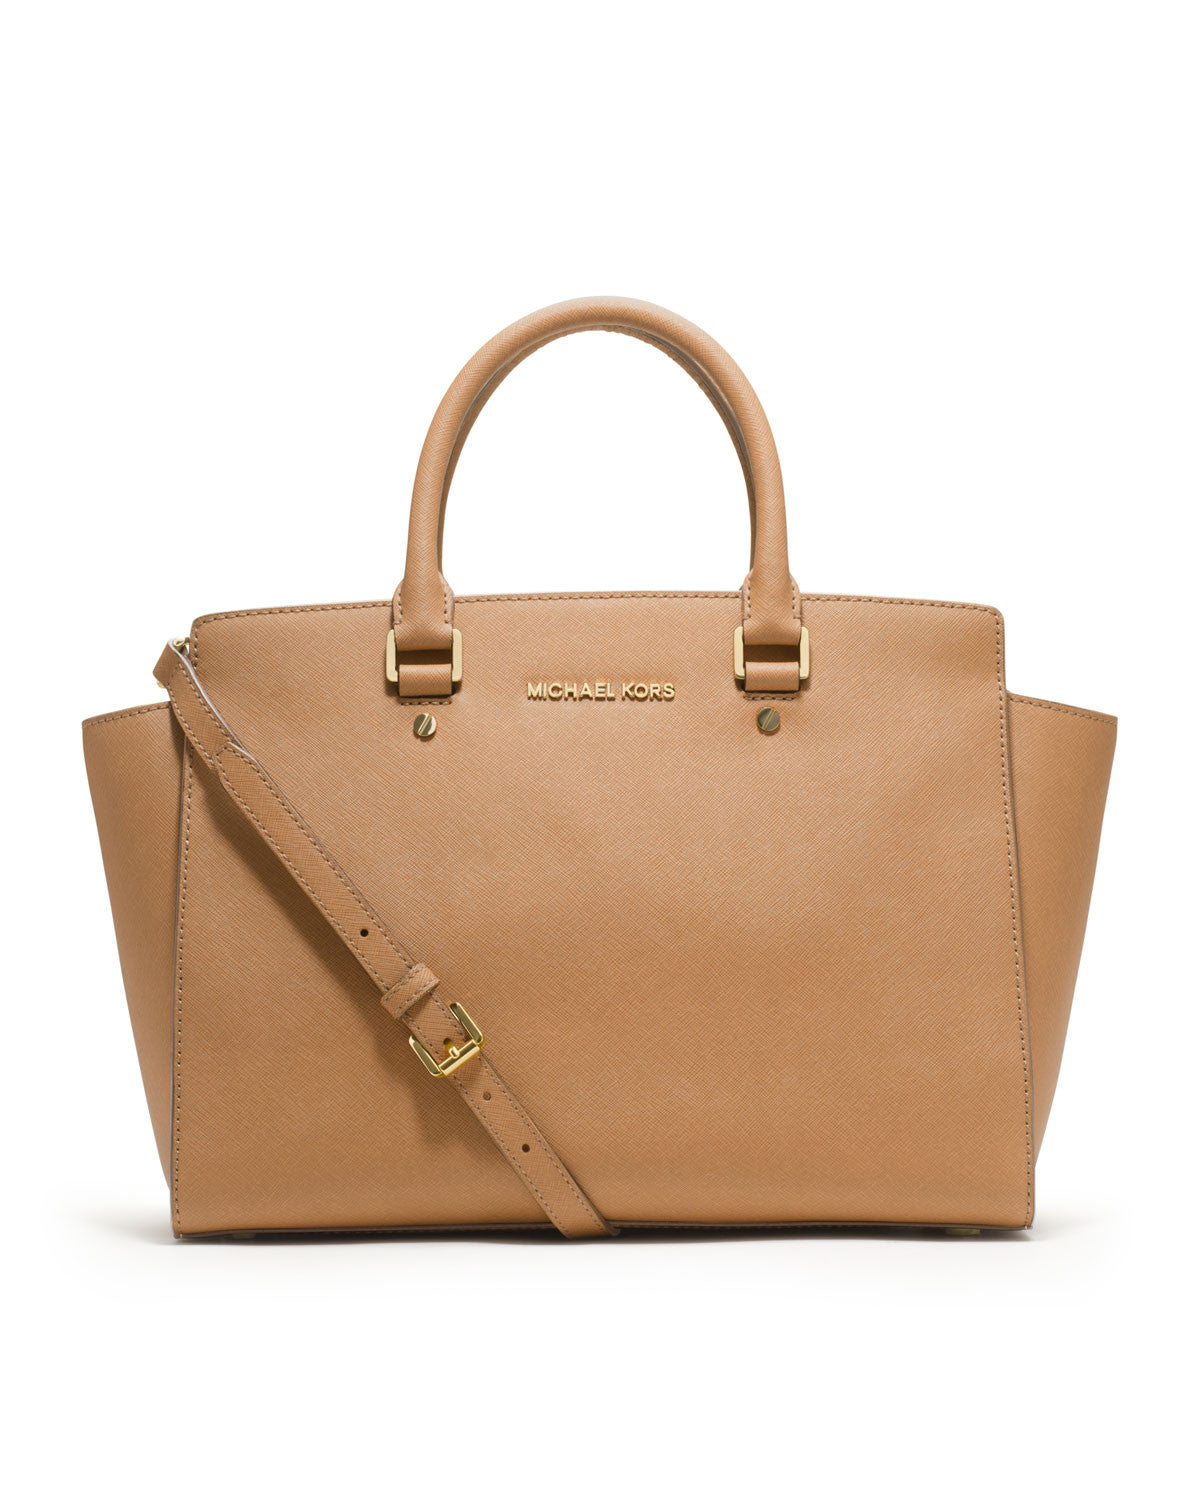 c7d8431c945c michael-kors -tan-large-selma-topzip-satchel-product-4-6253159-727921113.jpeg?v=1510177132